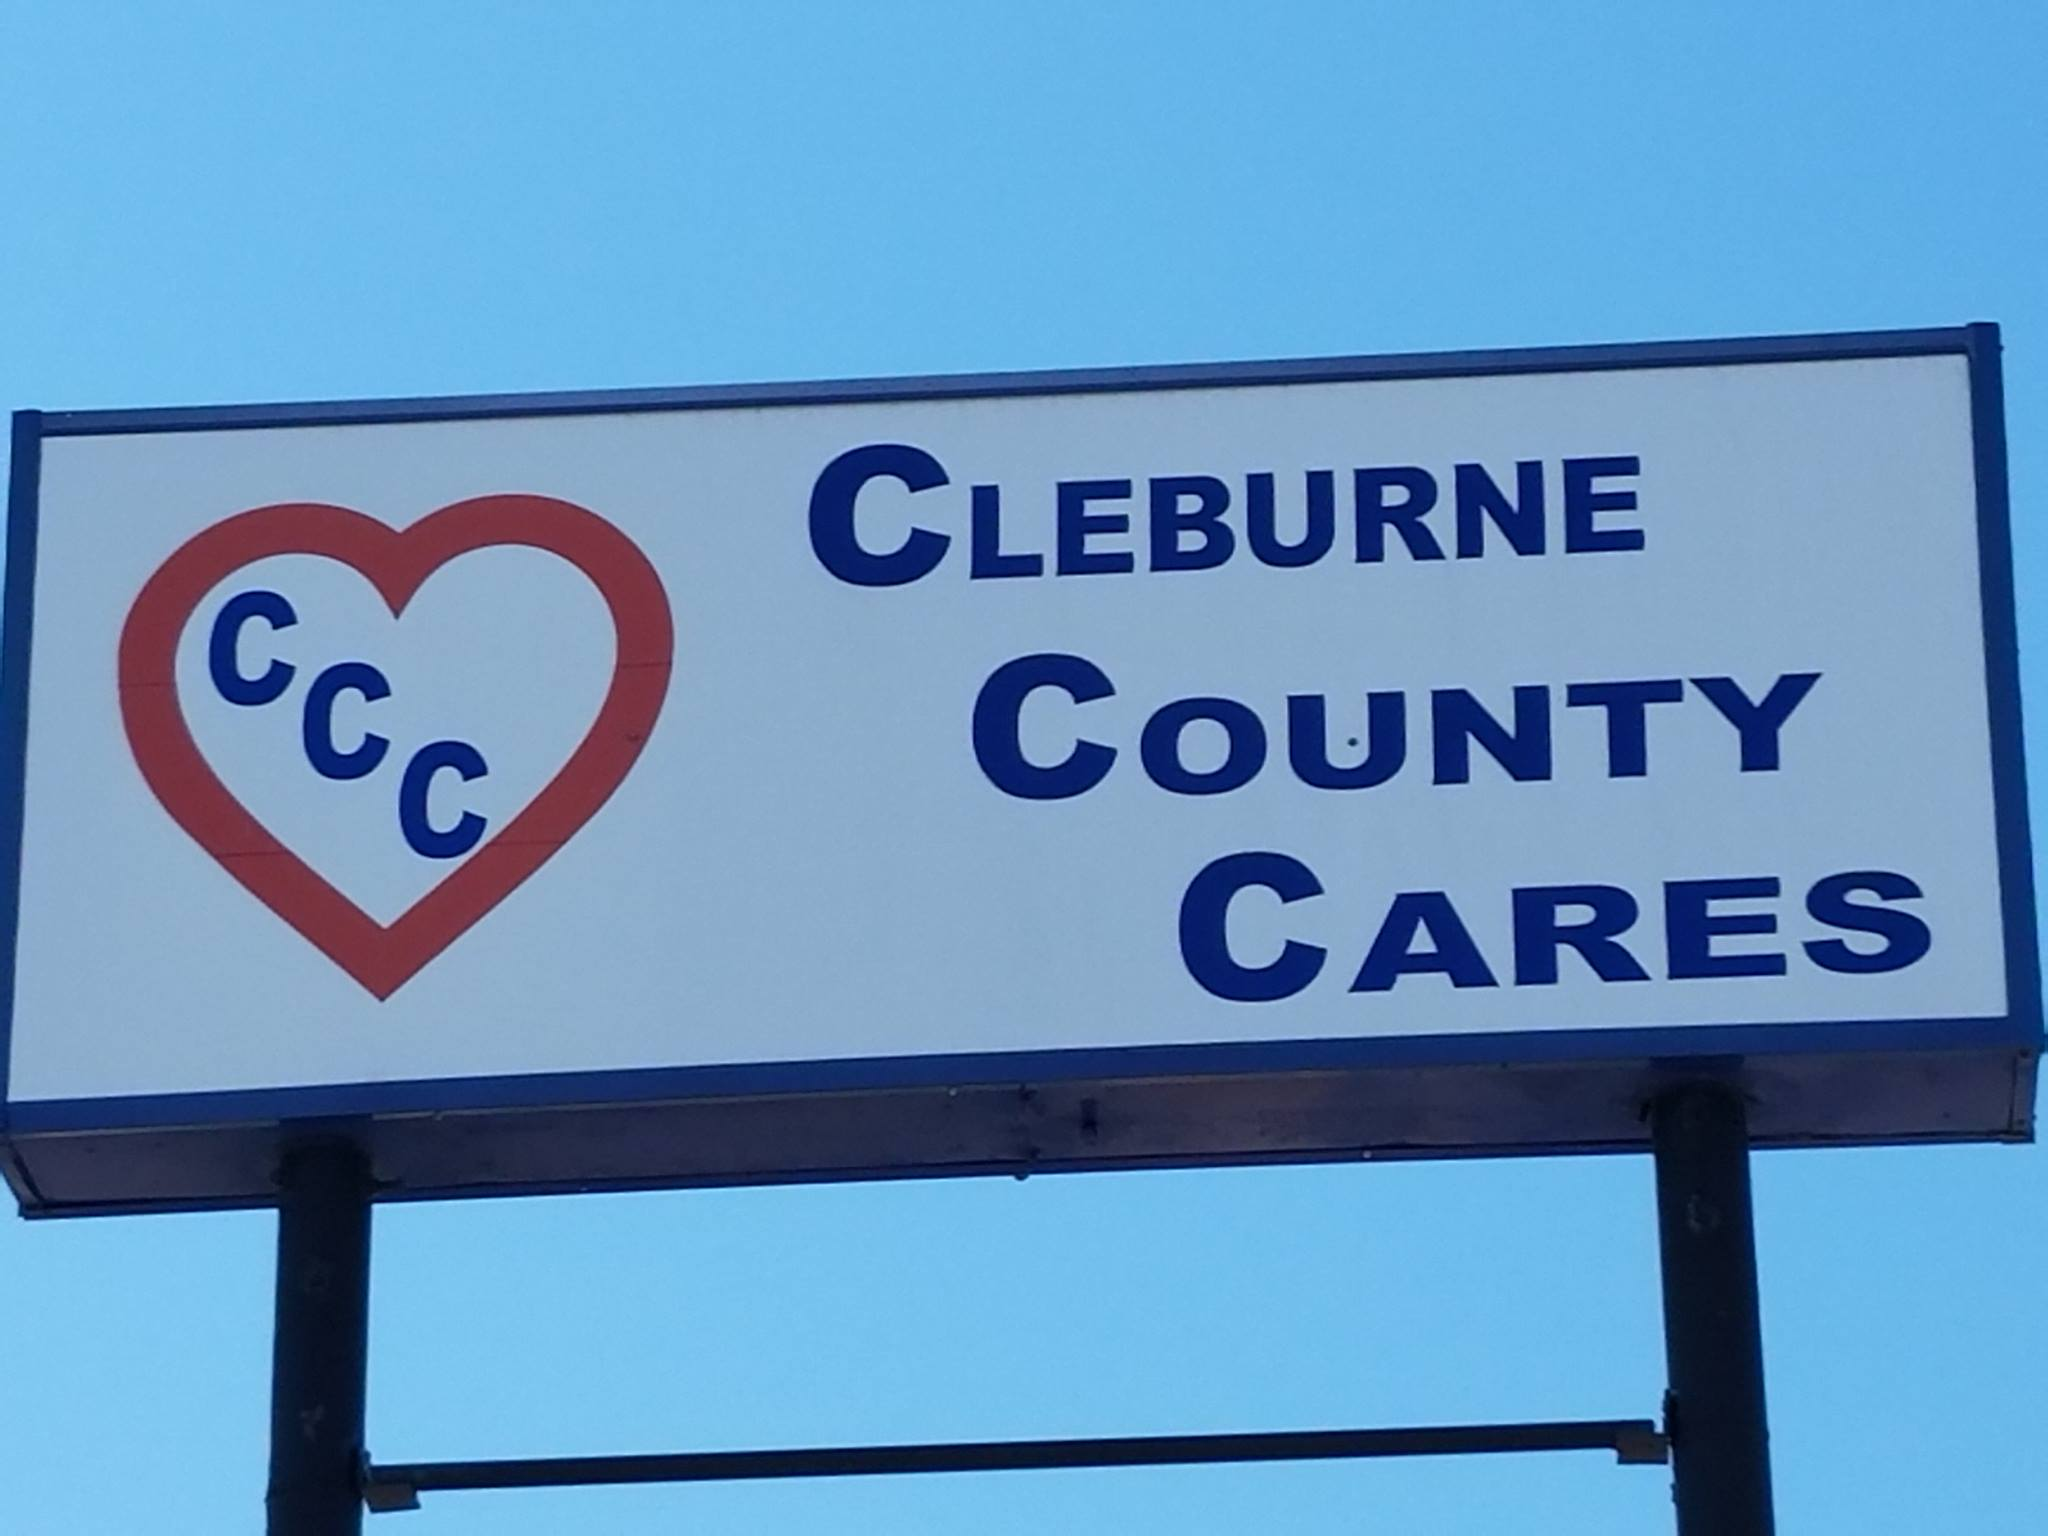 Cleburne County Cares